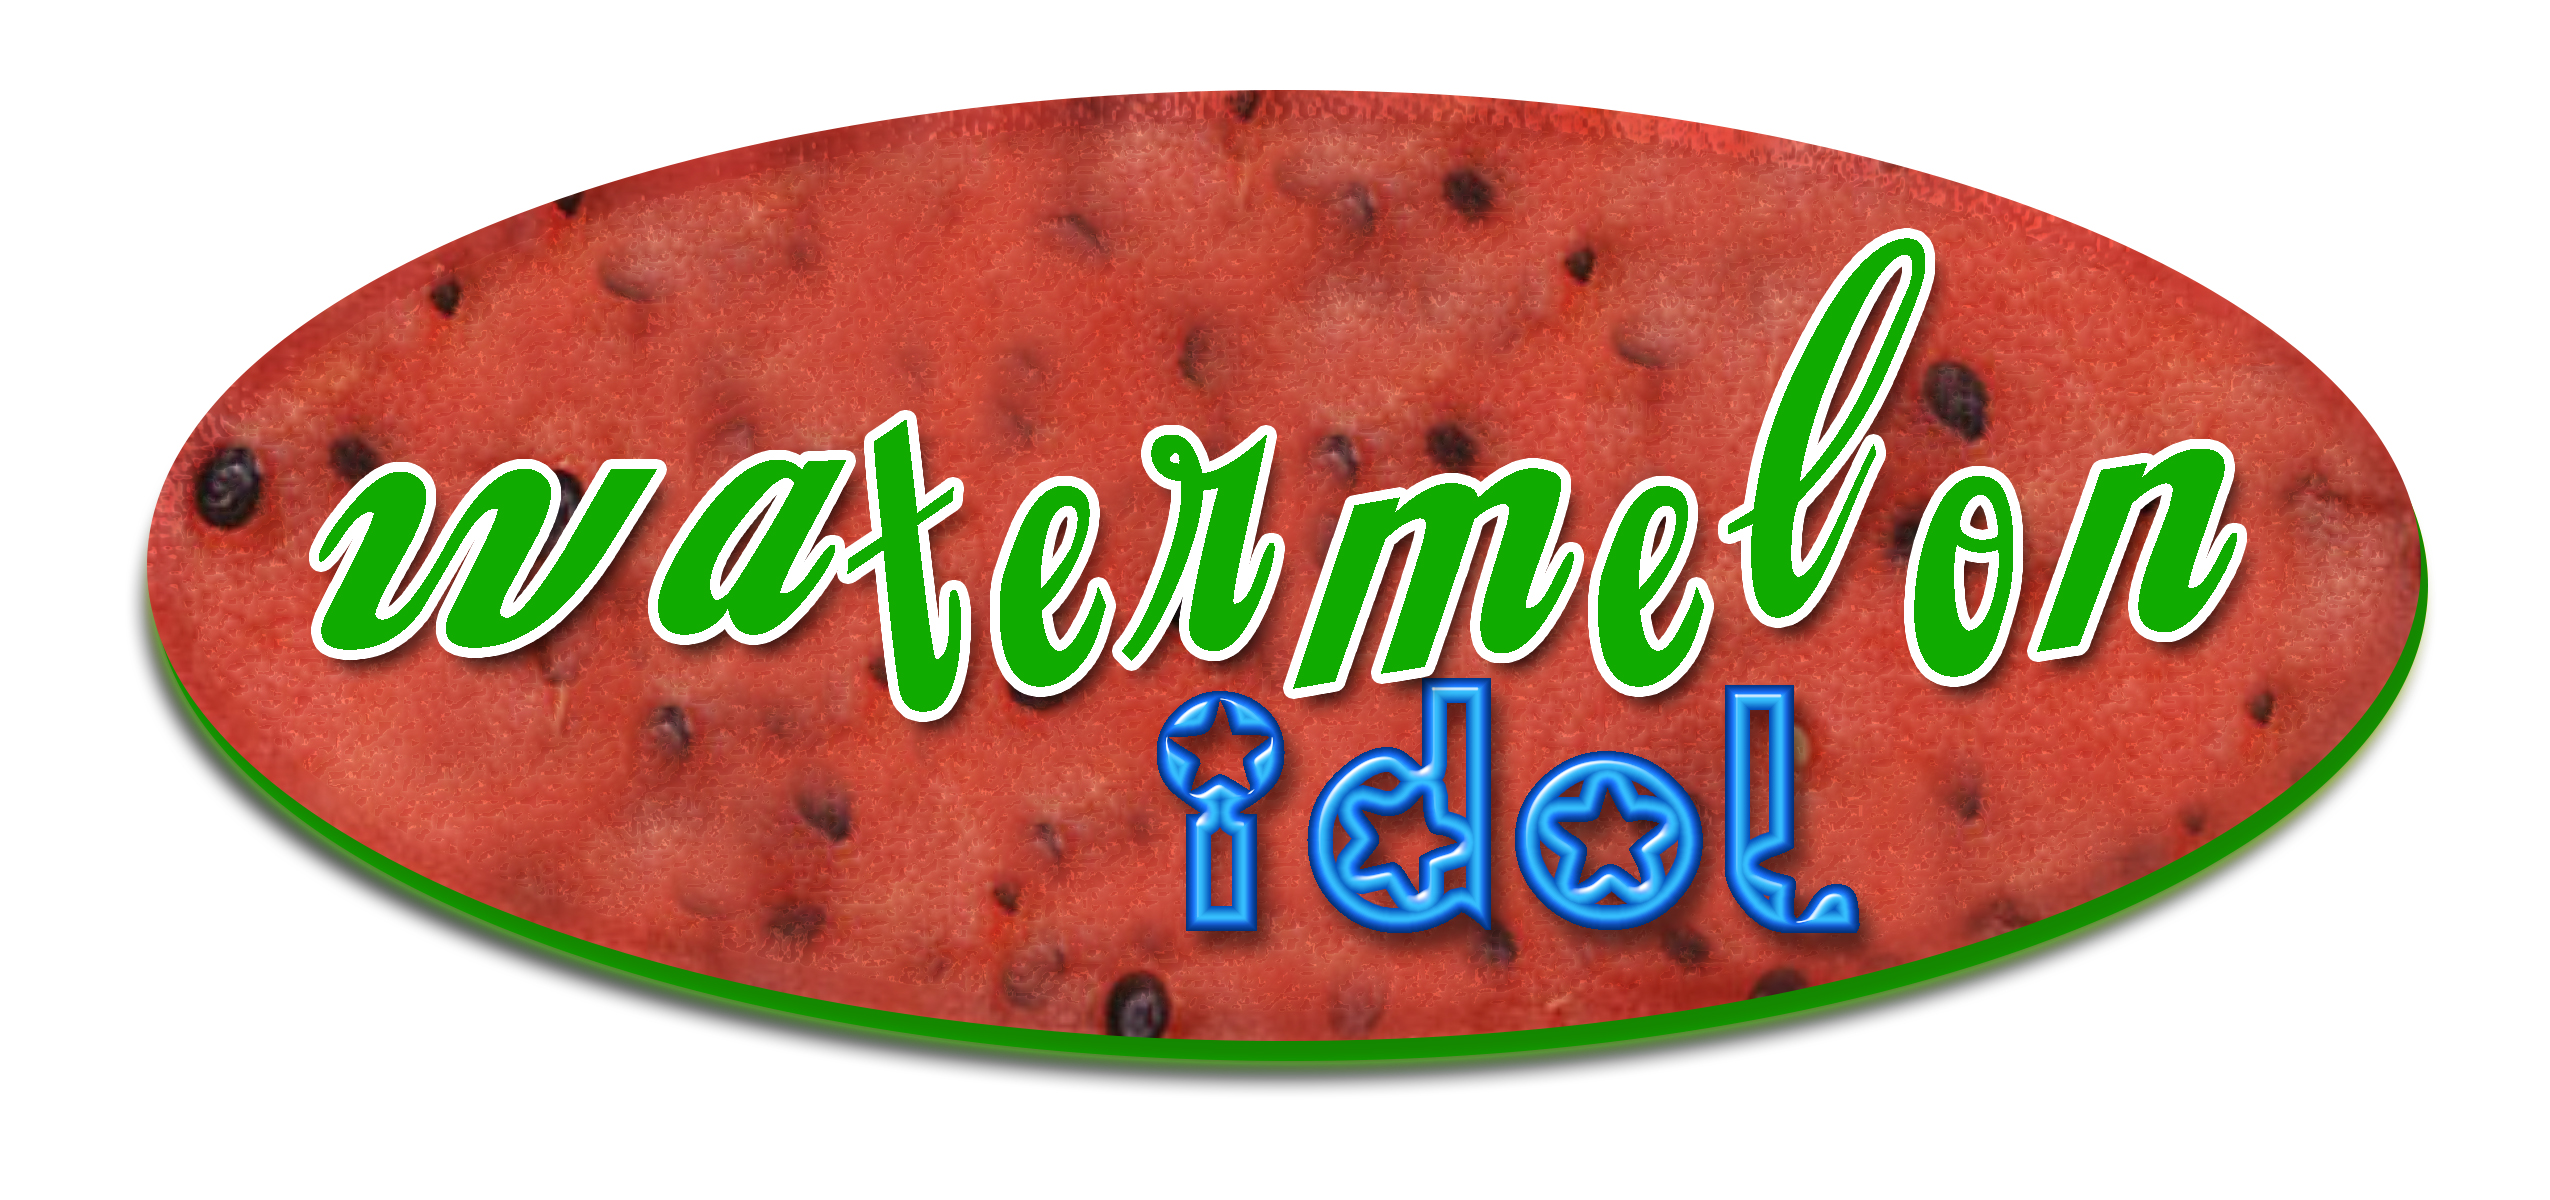 Watermelon Idol